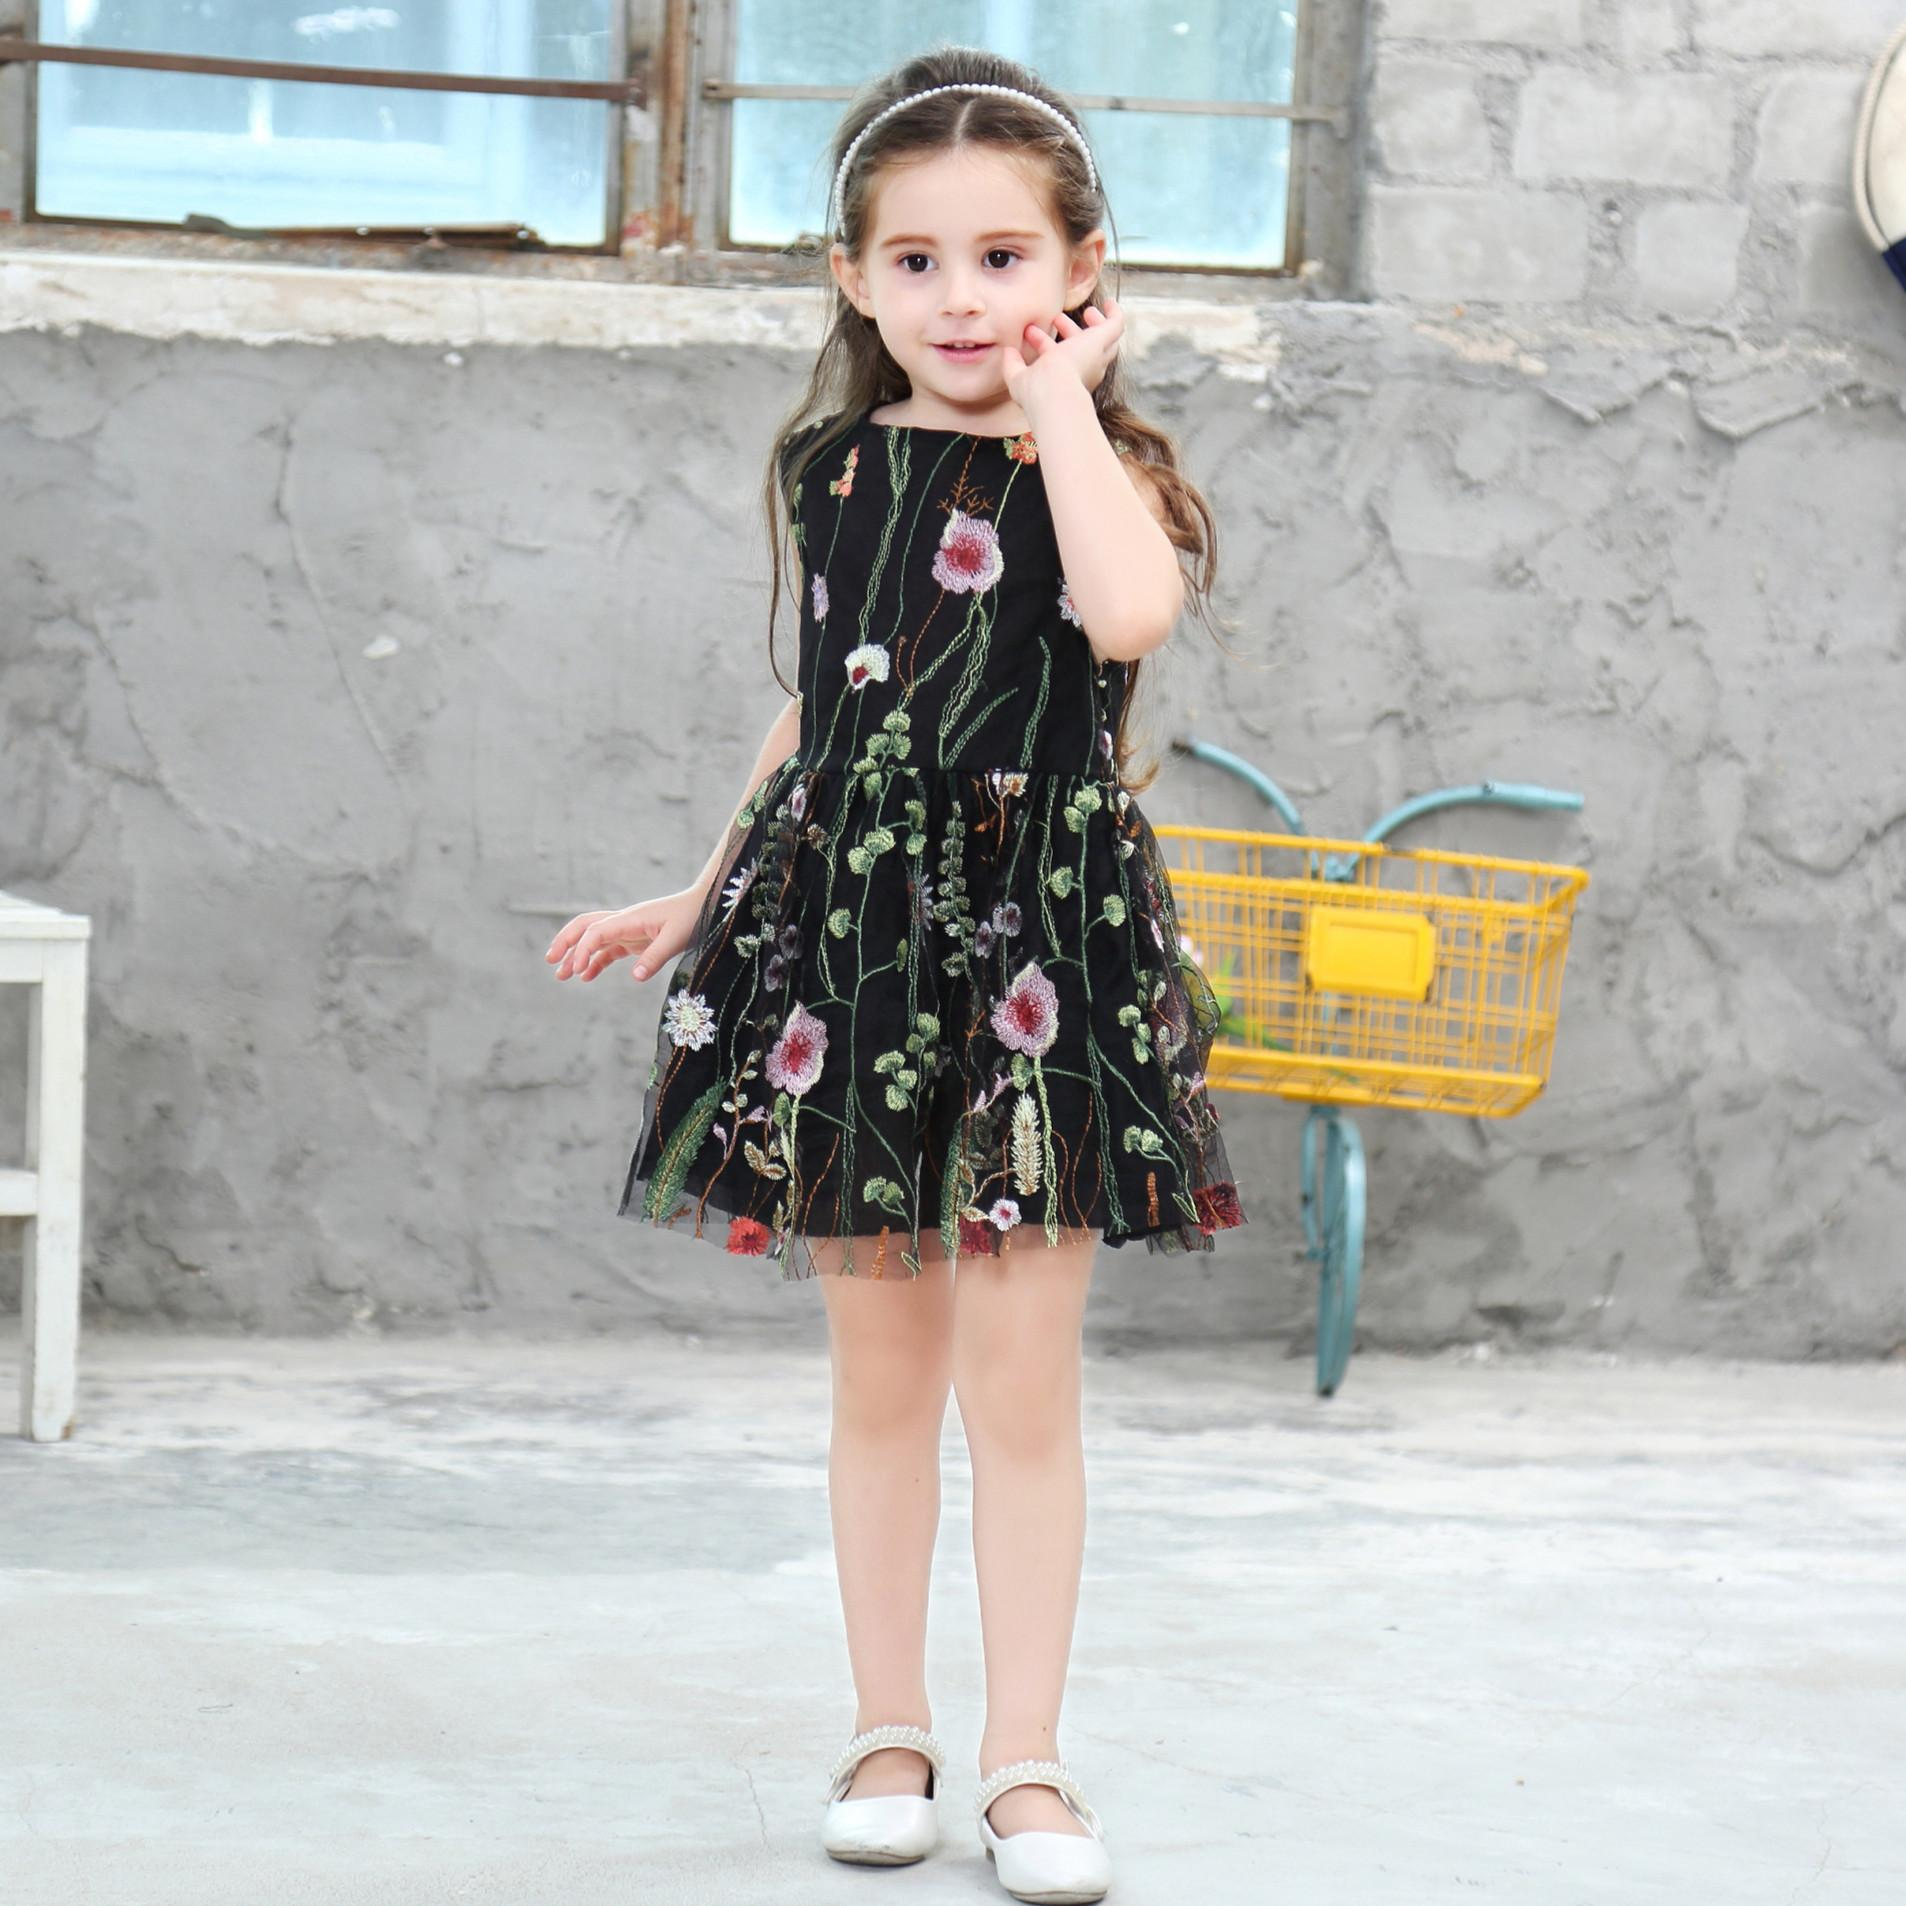 caf01004fd71 2019 Girls Vest Dresses Floral Prints Princess Backless Sleeveless Lace  Black Sweet Summer Party One Piece 100cm 140cm From Bowie1228a, $17.74 |  DHgate.Com